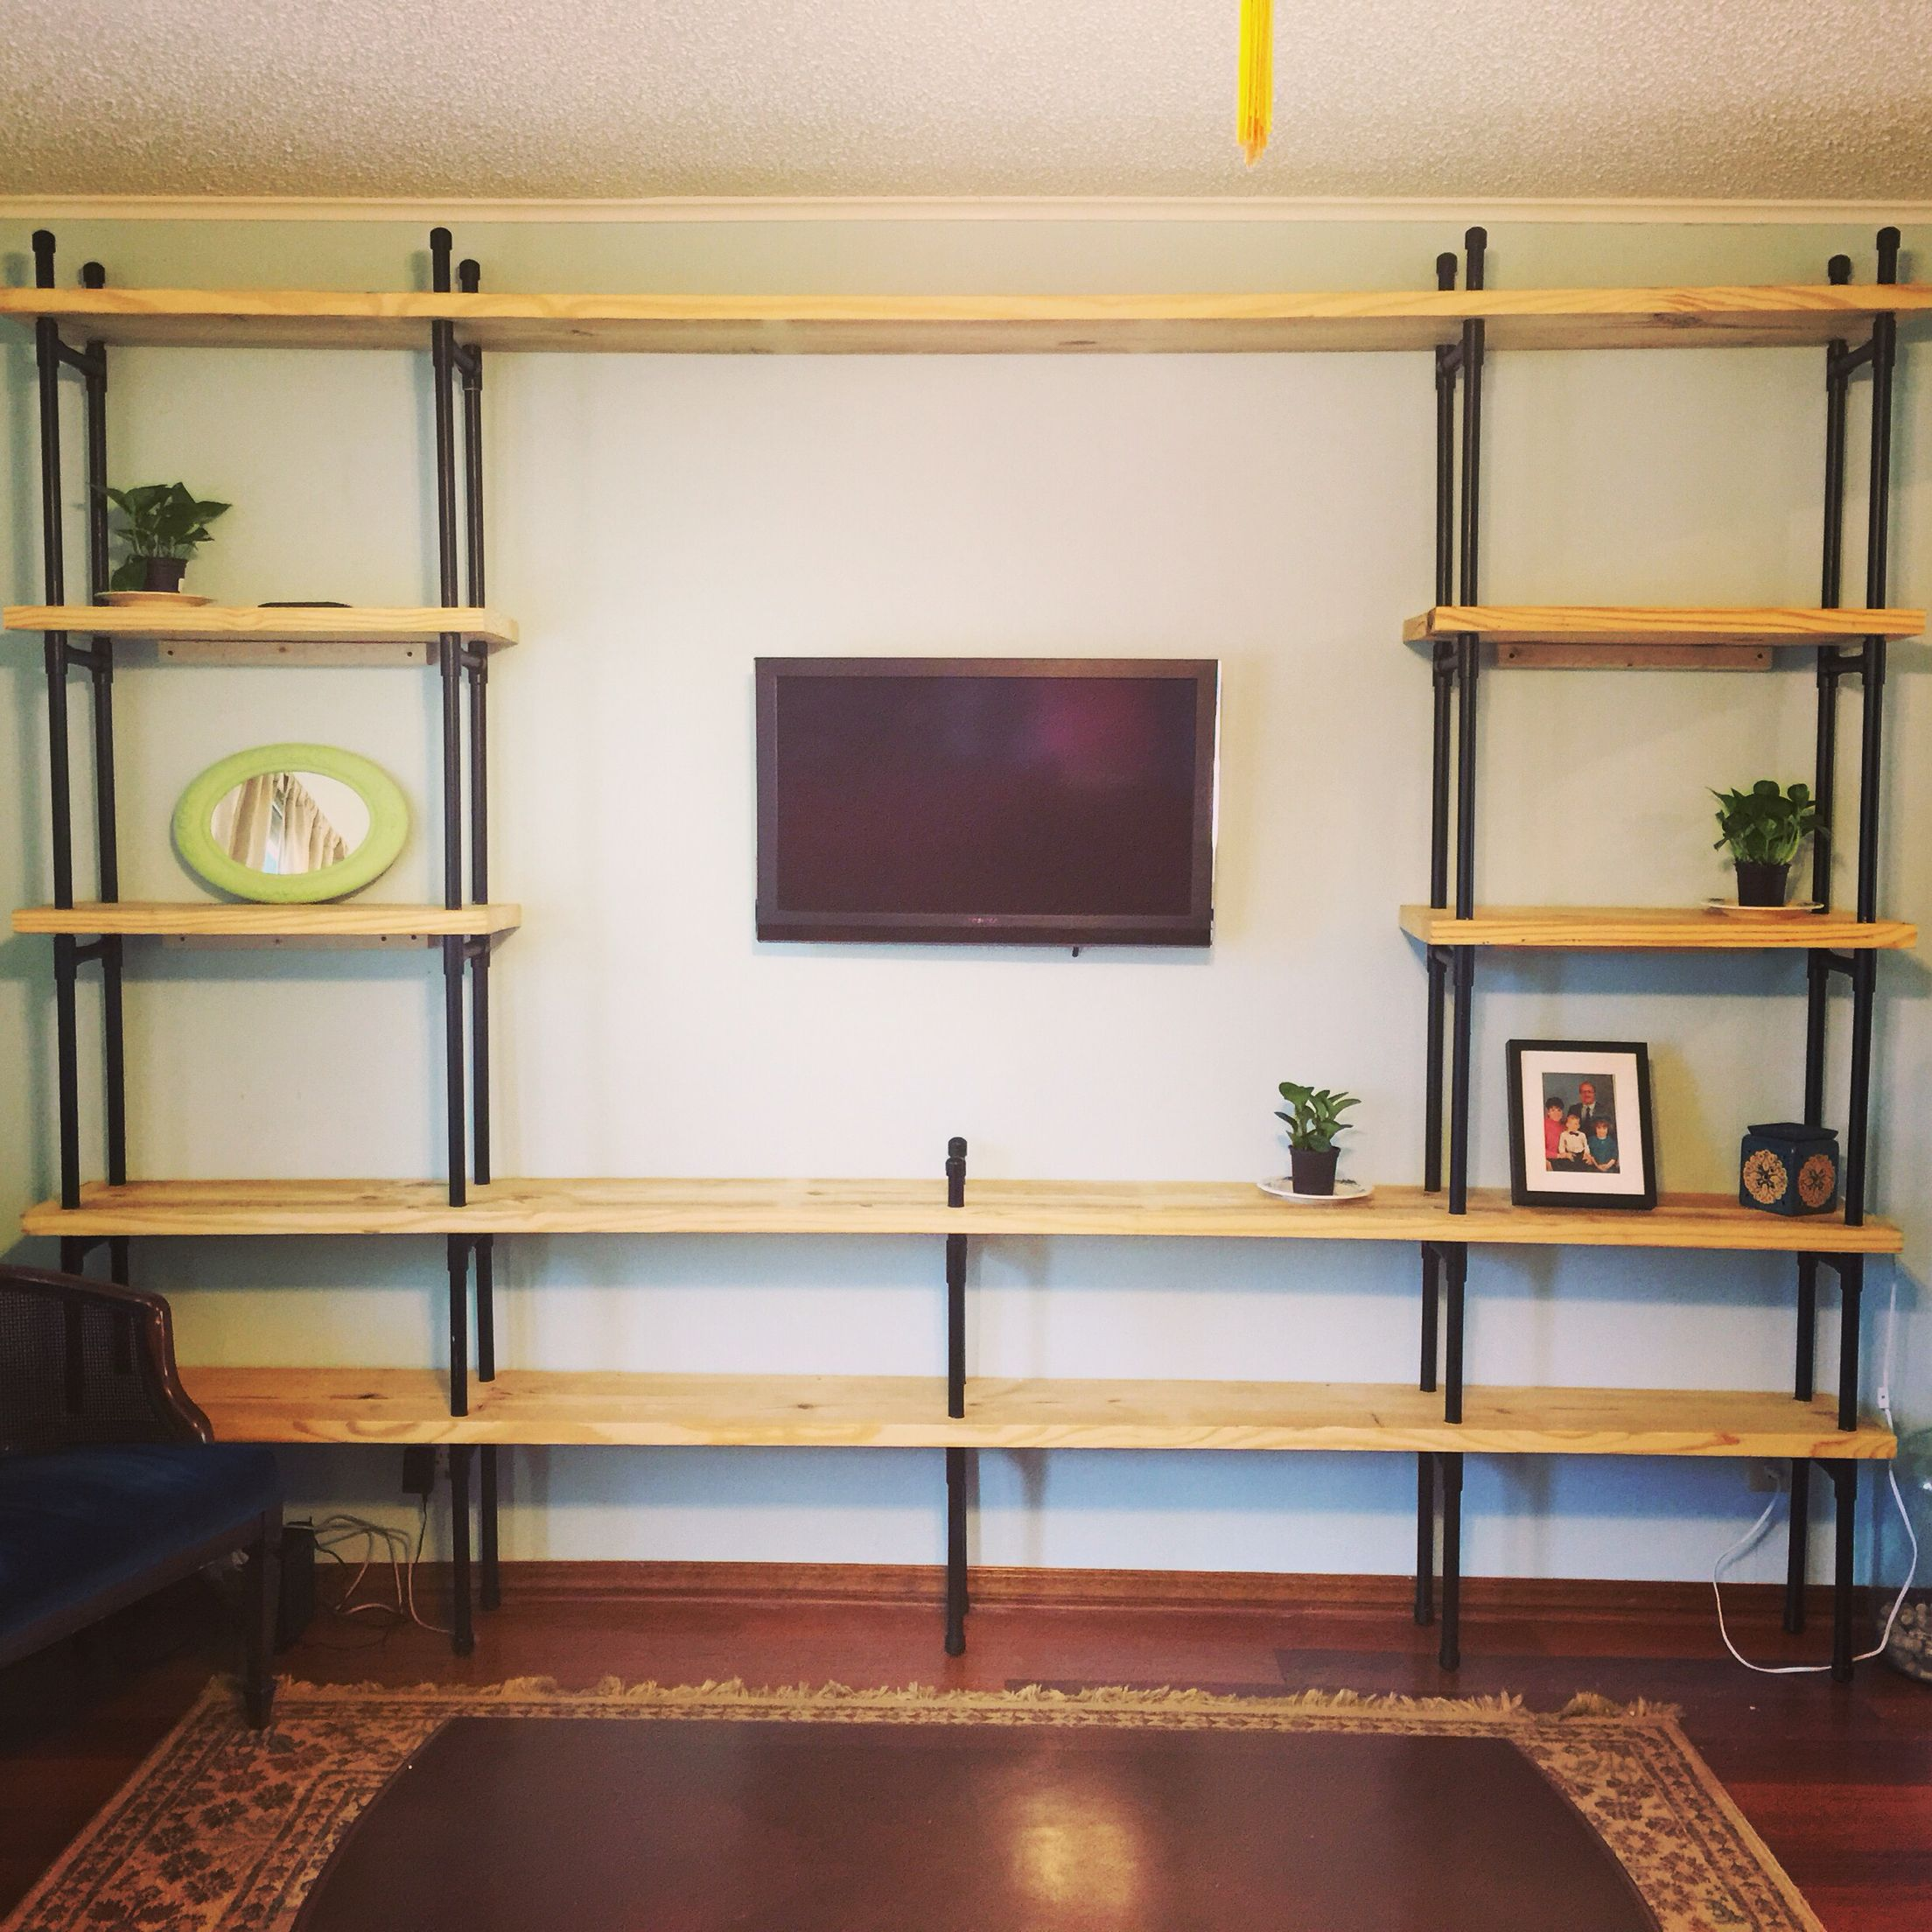 Completed Pvc Pipe Shelves …   Things To Make/ Build In 2019…